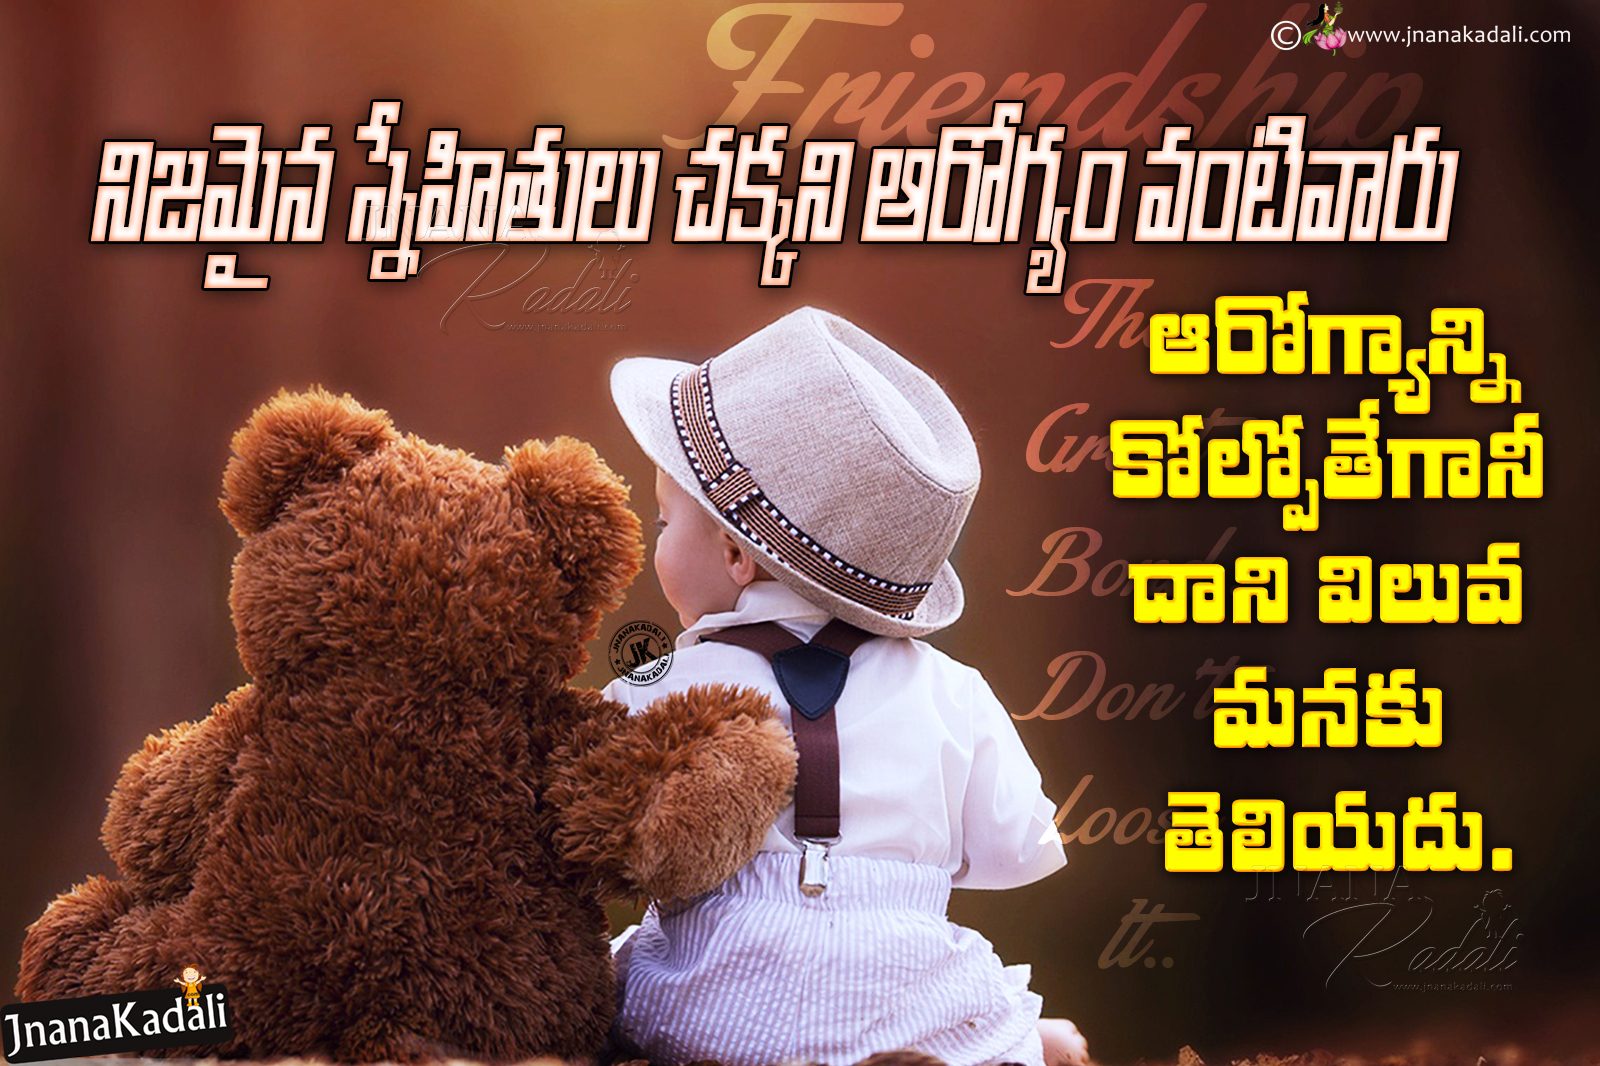 Quotes About Friendship Pictures True Friendship Inspiring Quotations In Telugu With Friendship Hd